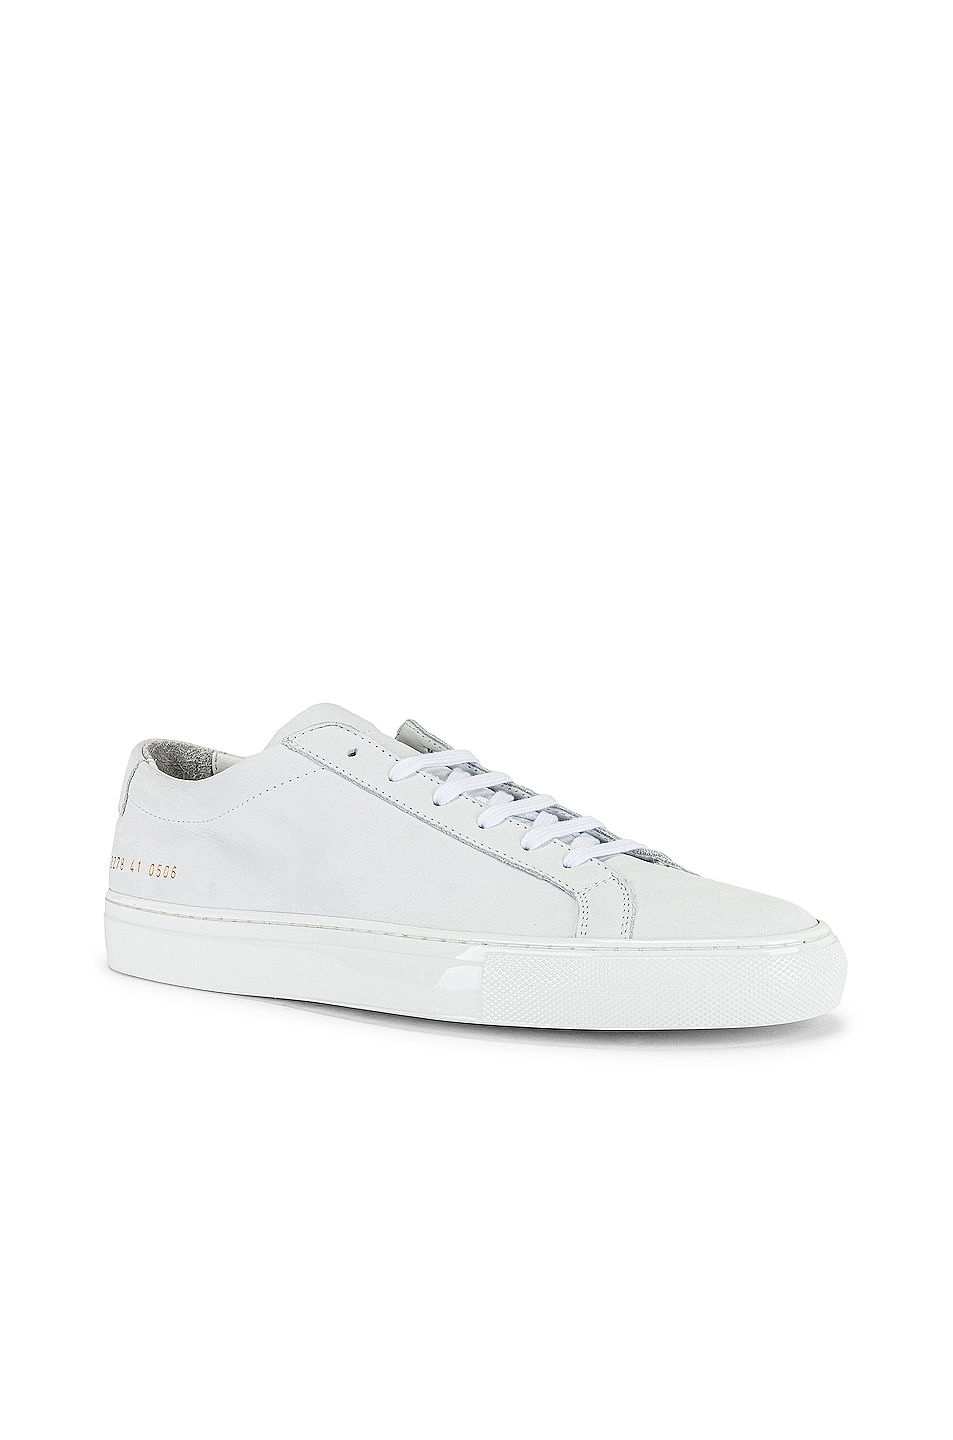 Image 1 of Common Projects Achilles Nubuck Lux Low Top Sneaker in White